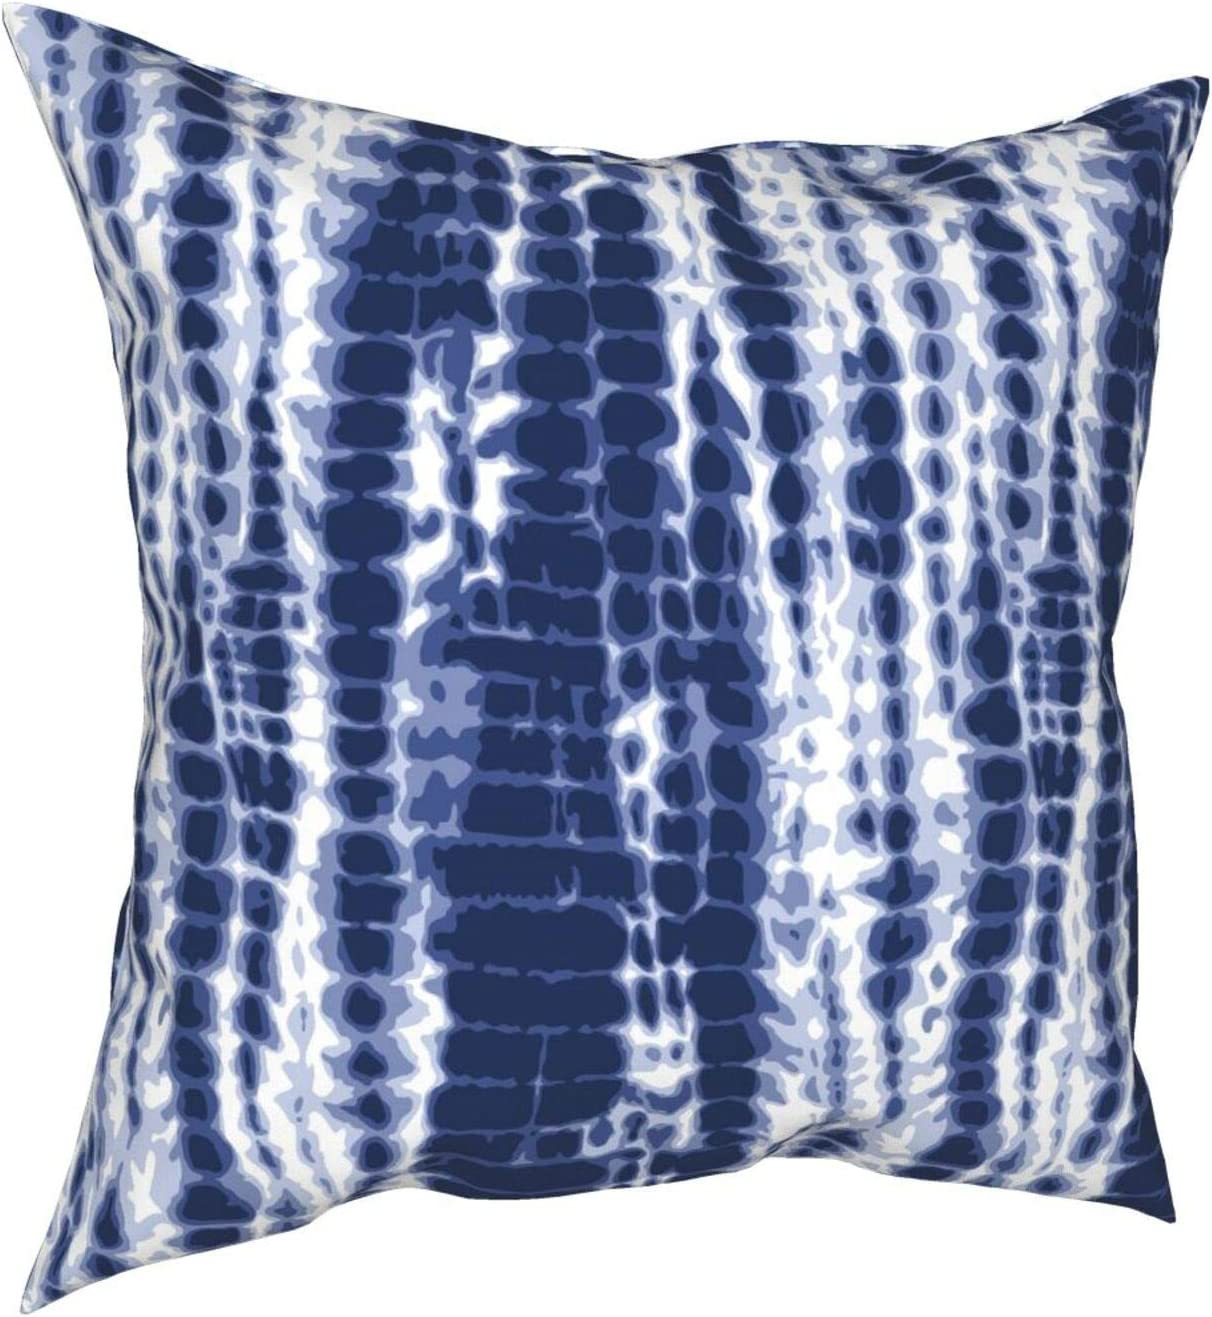 L LULUJAY Indigo Tie Dye Pillow Case,Blue Tie Dye Striped Pattern Navy Decor Design Throw Cushion Cover for Couch Sofa Kitchen Bedroom Living Room 12x12 Inches